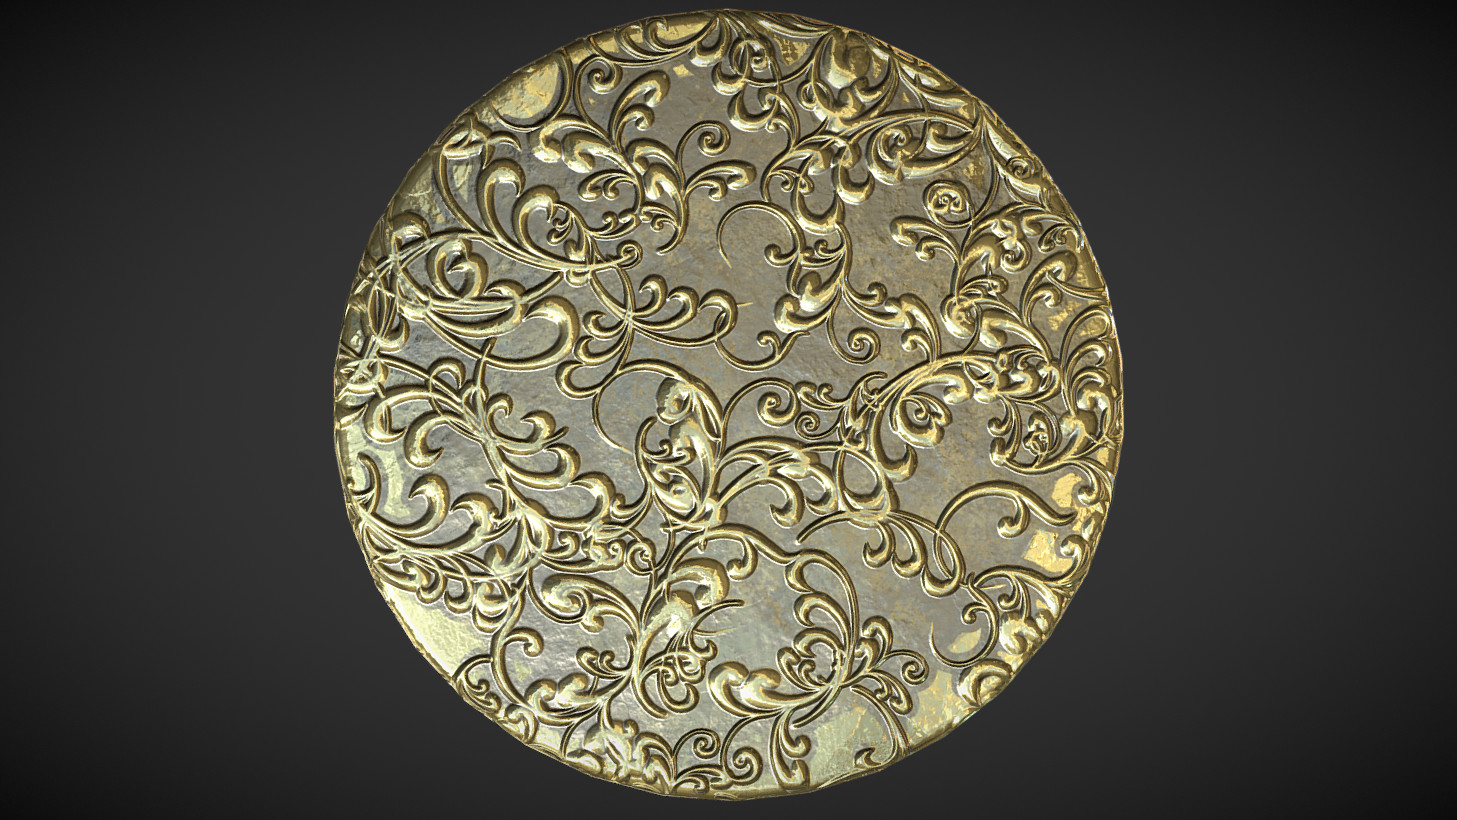 Baroque Pattern and Gold Leaf Substances